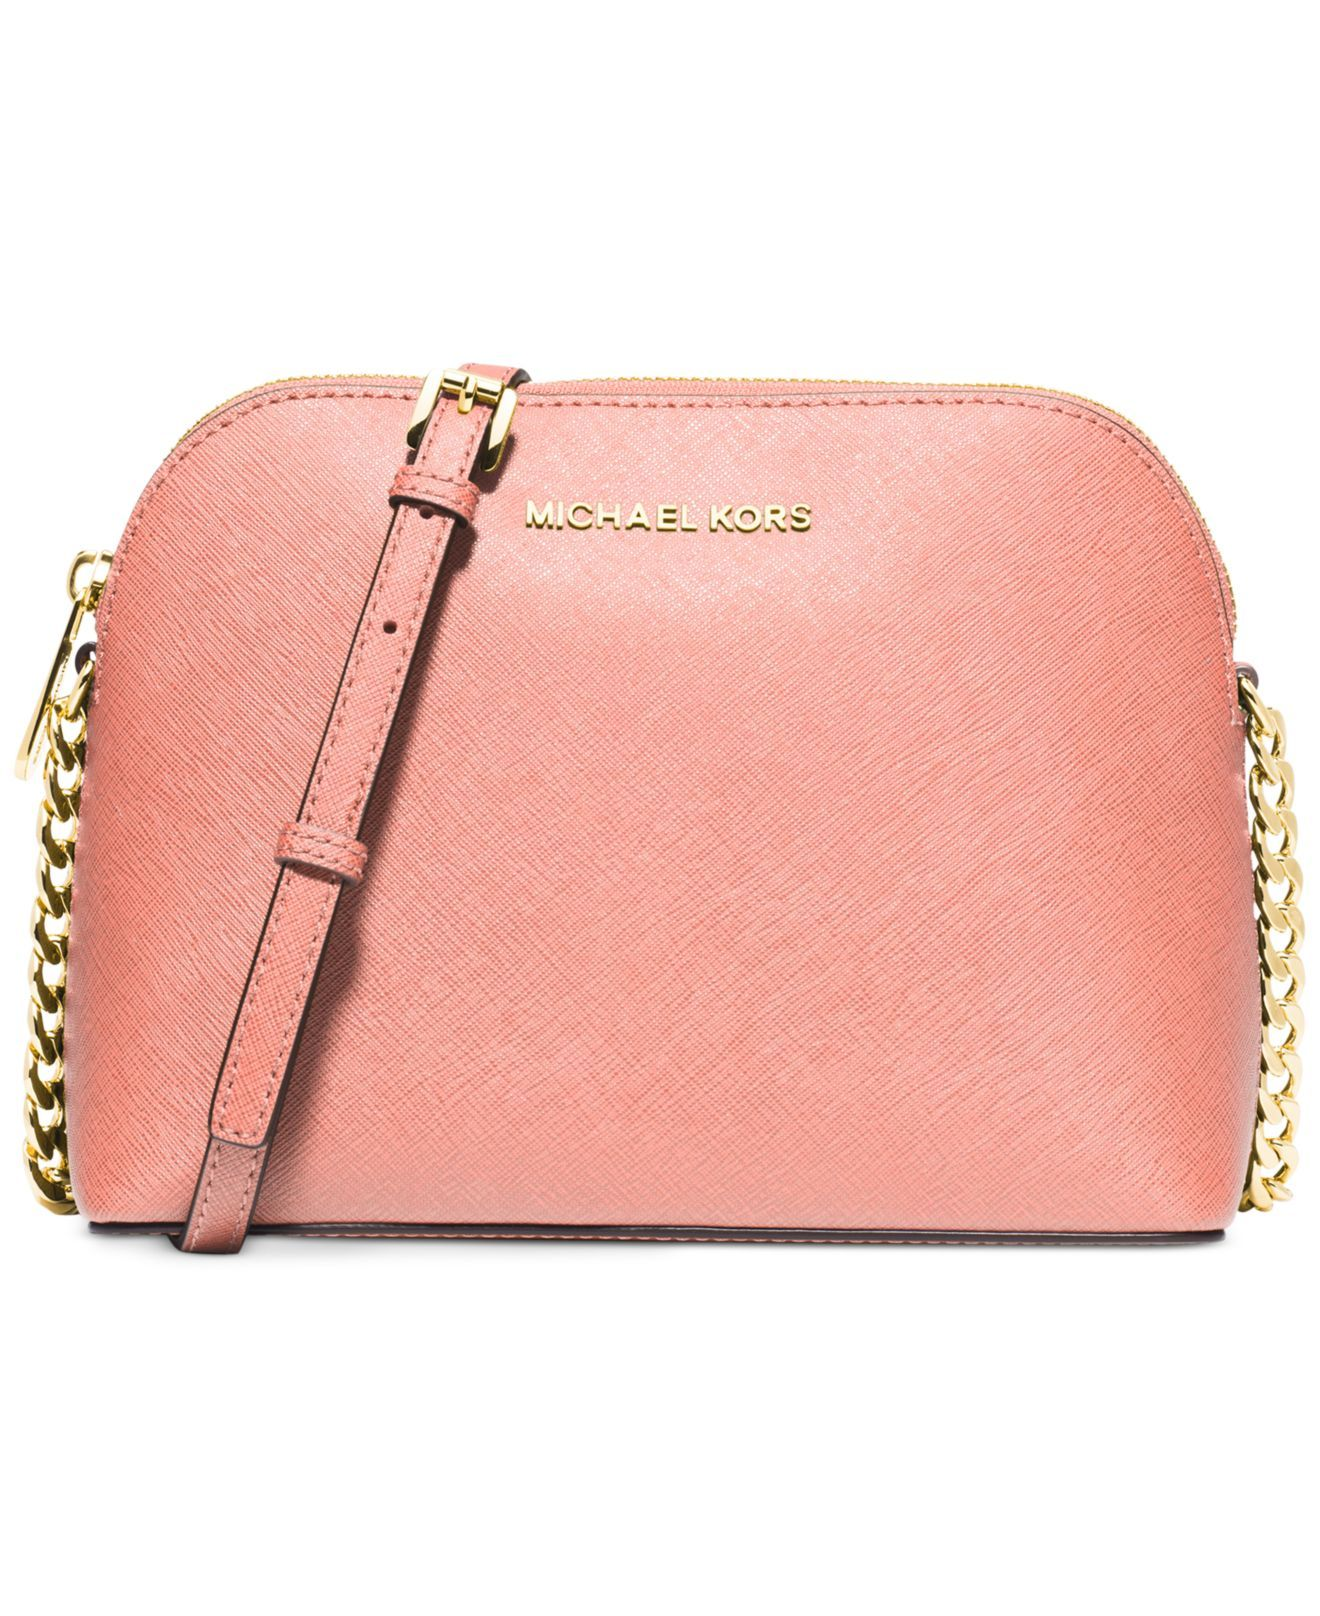 Michael kors Michael Cindy Large Dome Crossbody in Pink (Pale Pink Gold)  6953e8da8ce9d